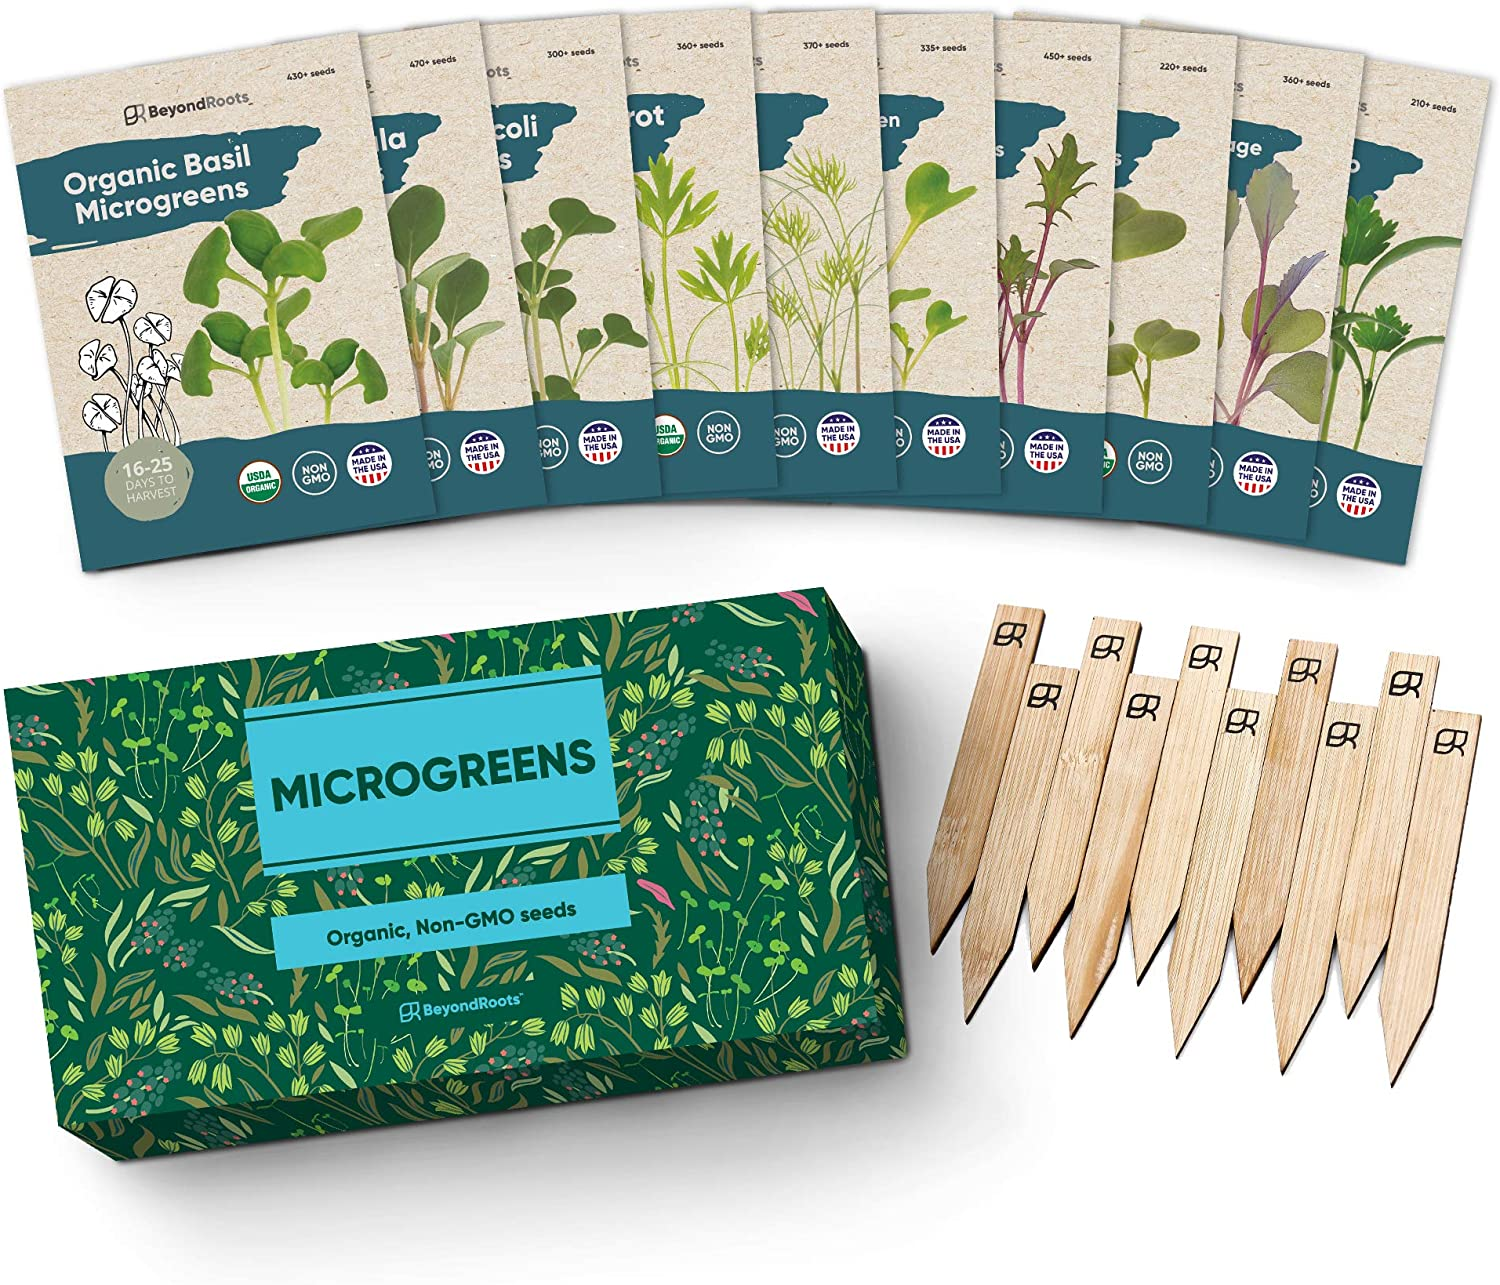 Organic Microgreens Seeds for Sprouting Variety Pack - 100% USDA Organic Sprouting Seeds - 10 Heirloom Seed Packets & Plant Markers